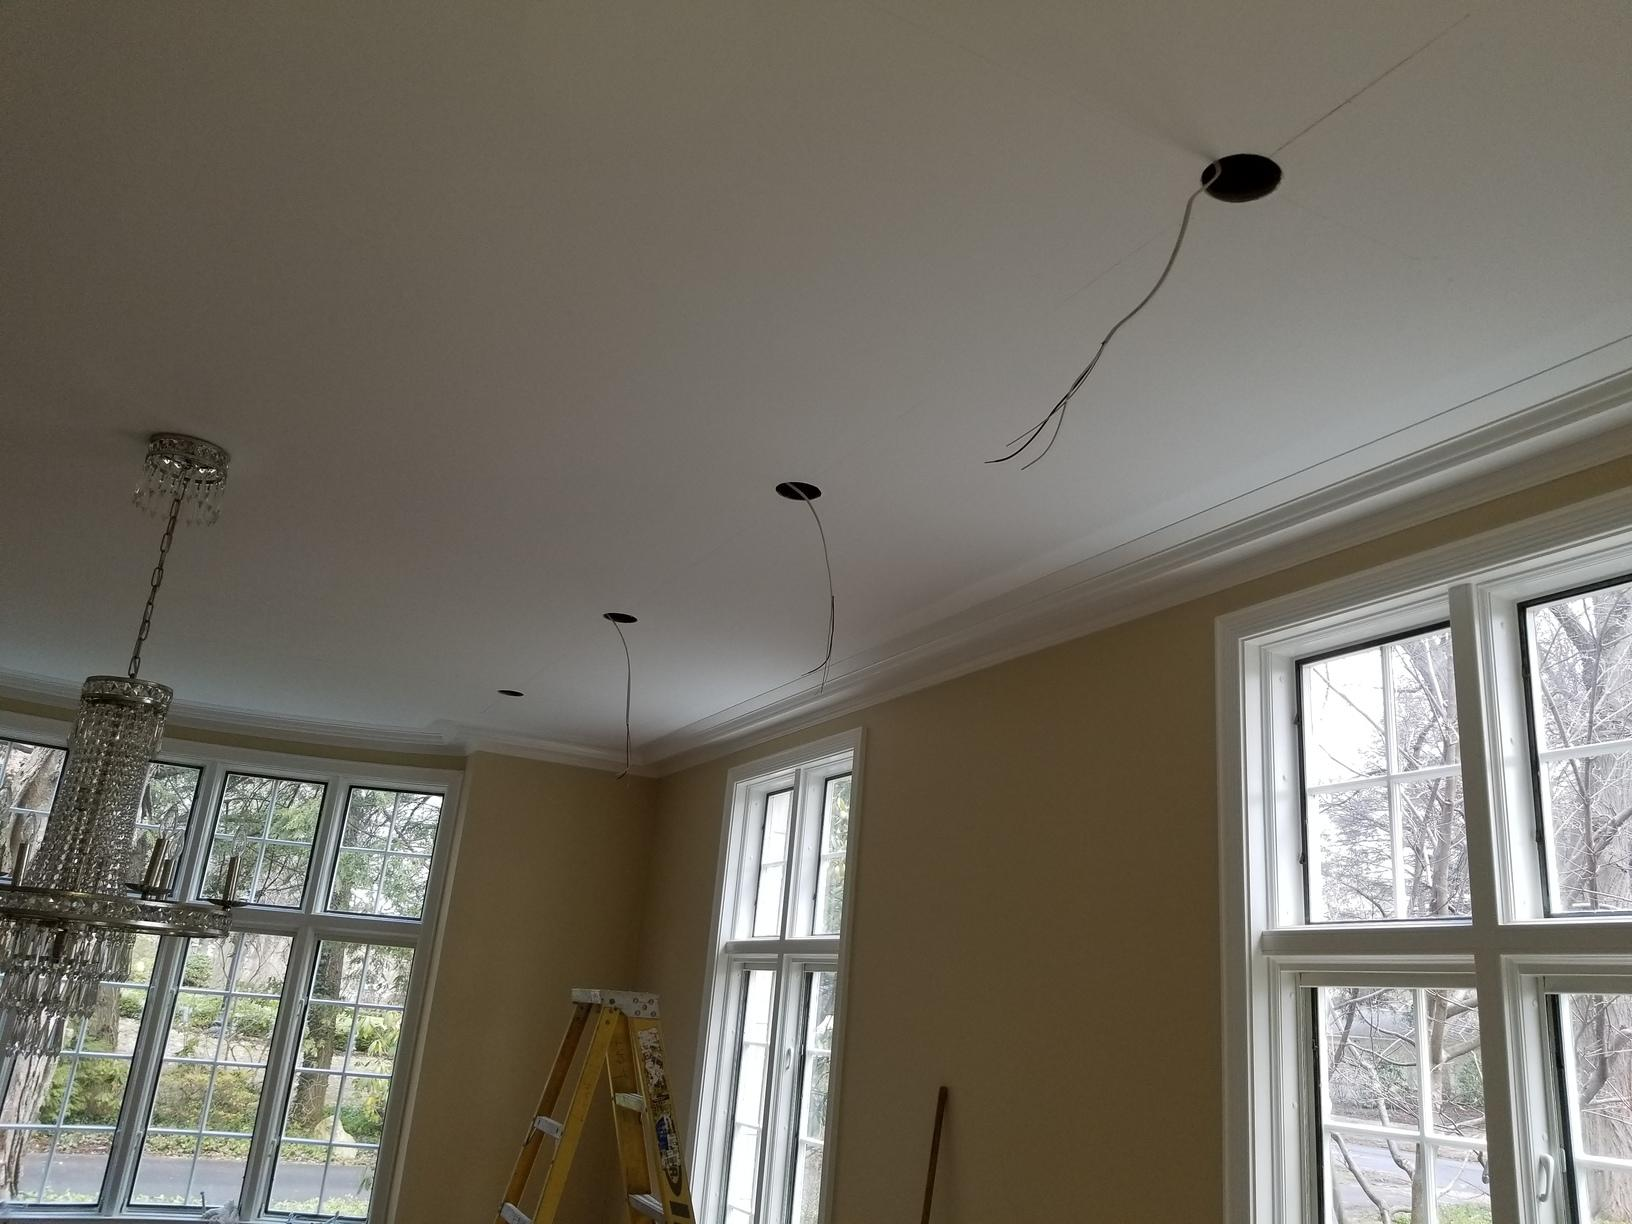 Dining room lighting upgrade for a Rochester, NY homeowner - Before Photo